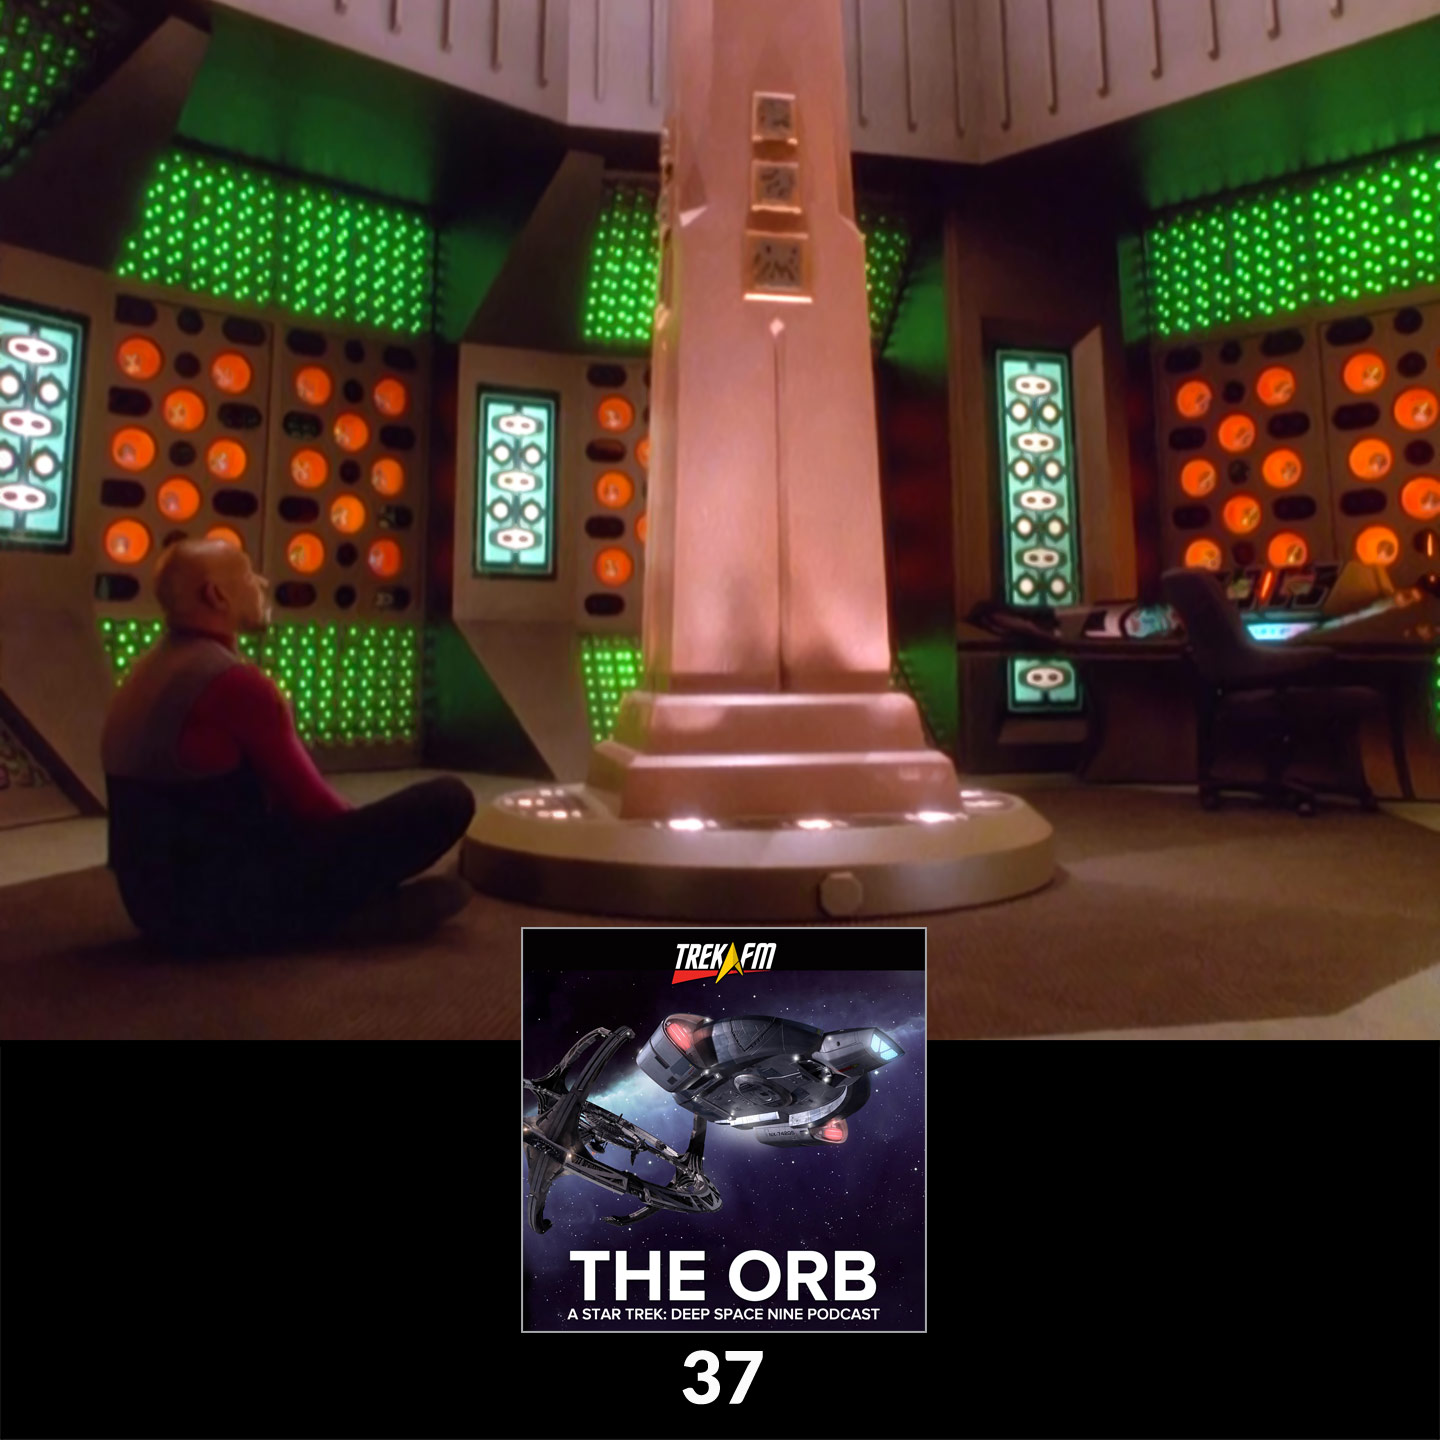 The Orb 37: Excellently Vague